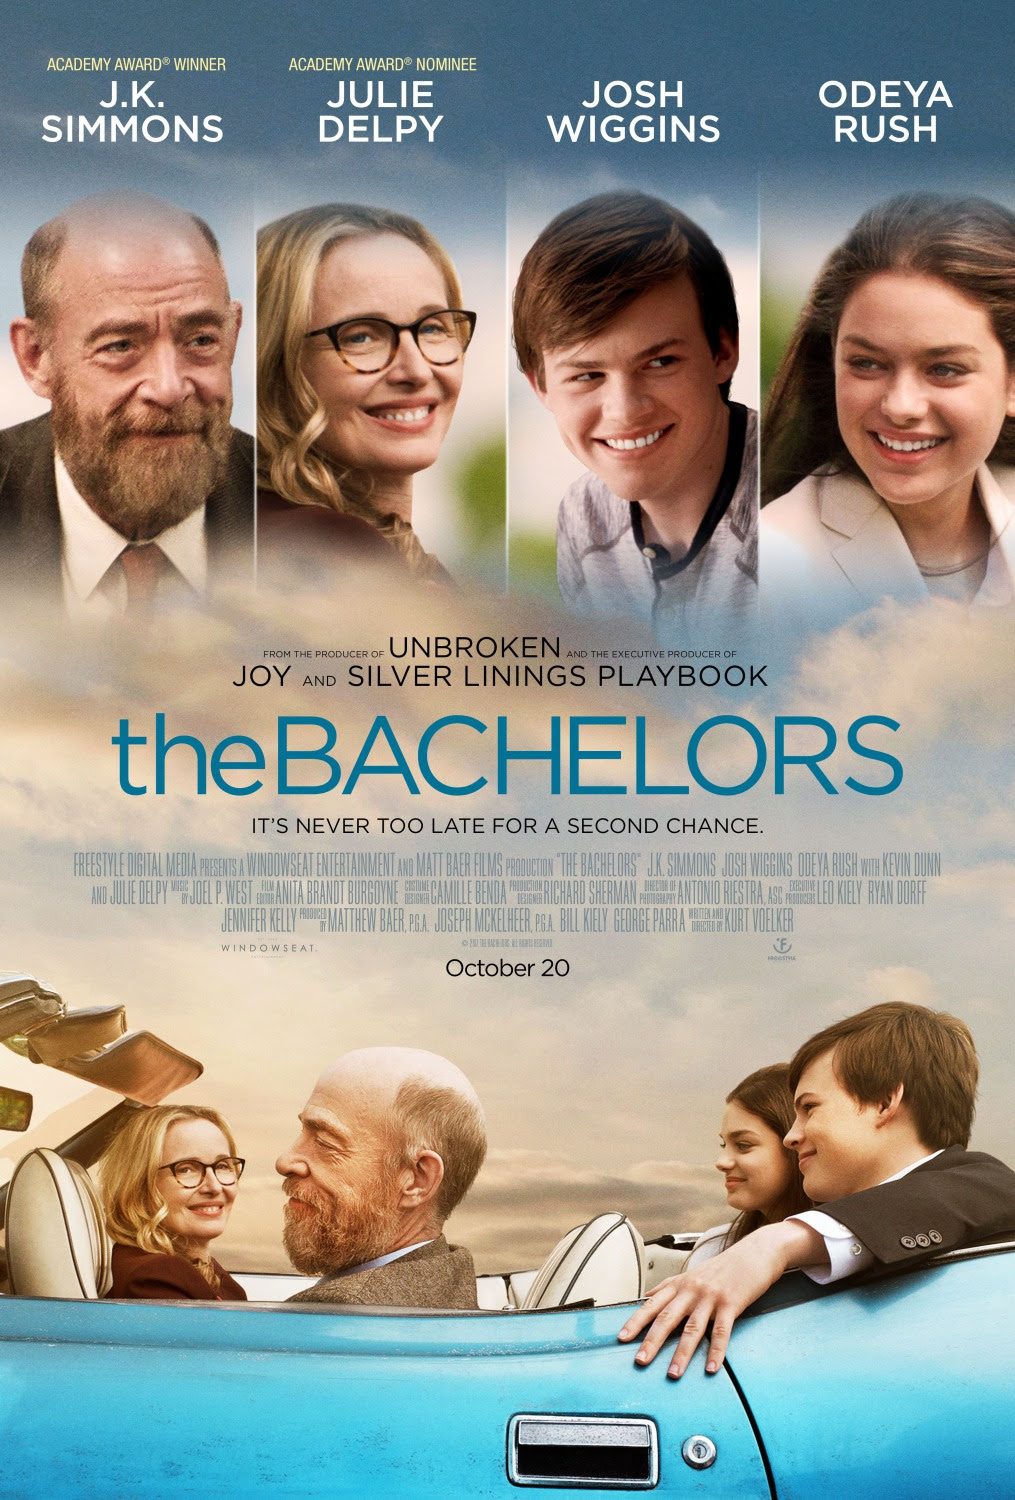 The Bachelors Movie Poster 1 Of 3 Imp Awards